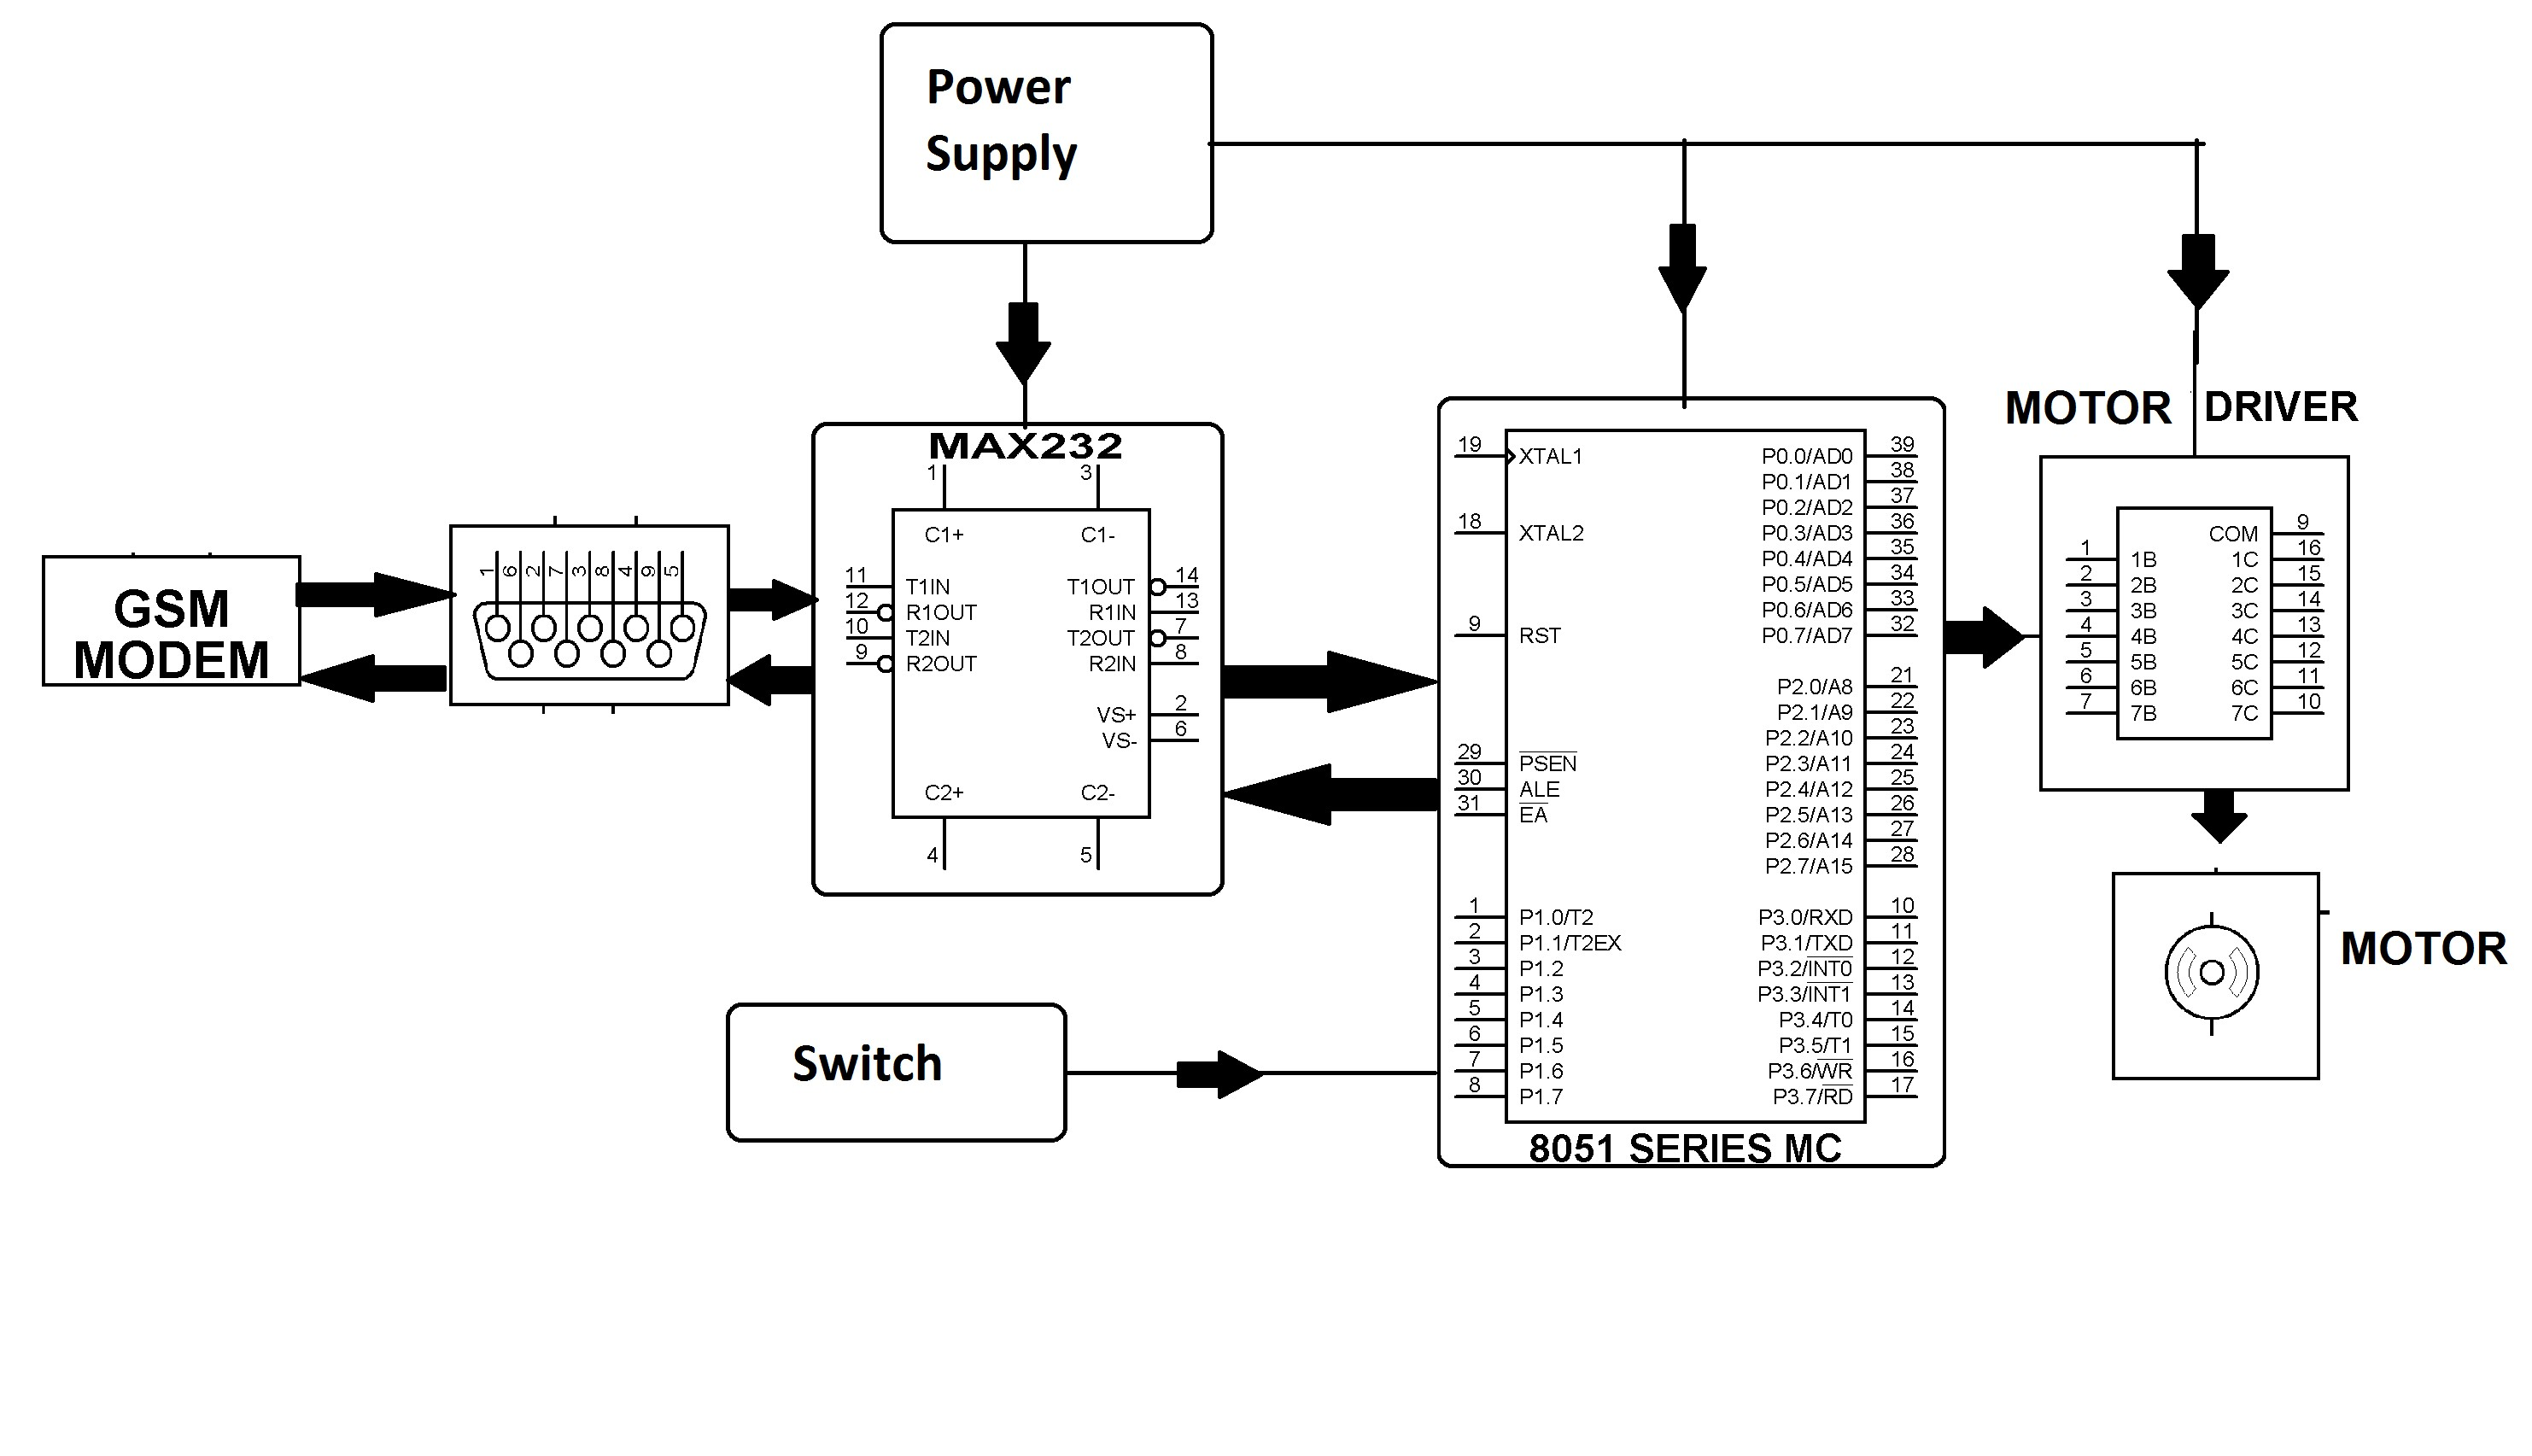 Engine Control Unit Block Diagram